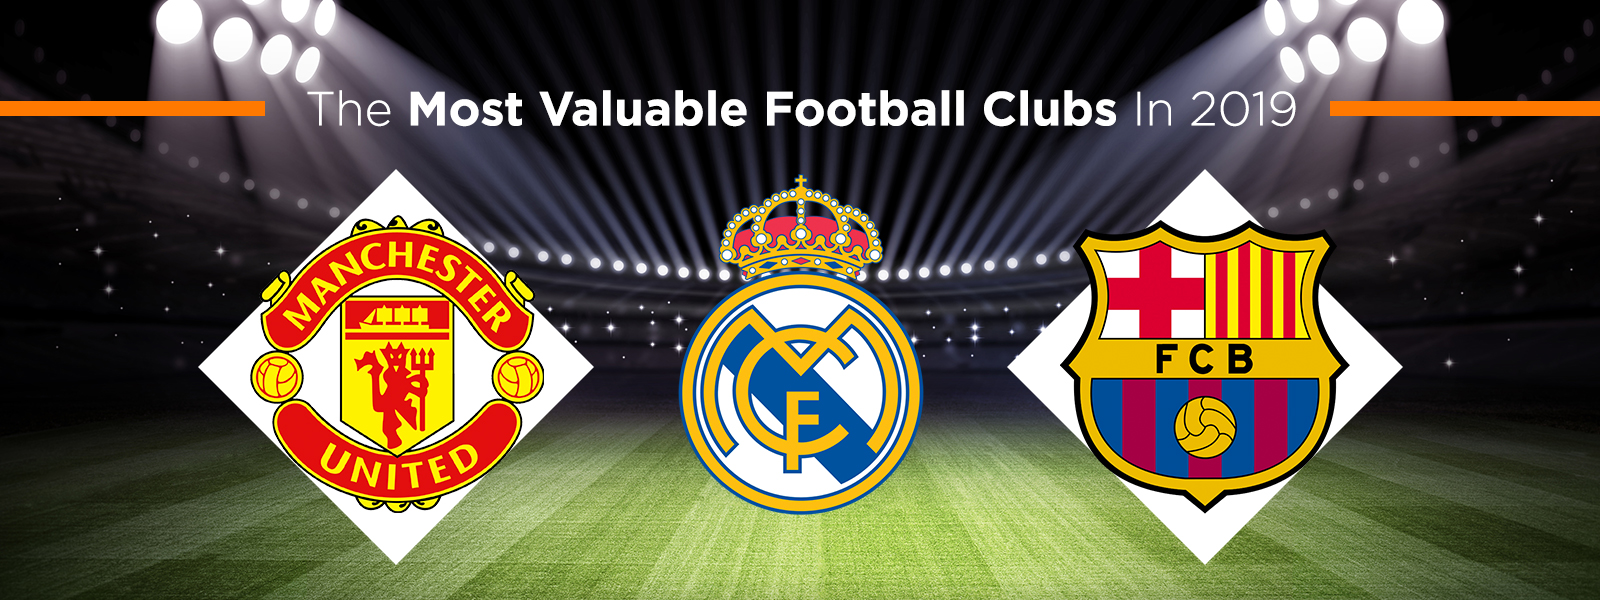 The Most Valuable Football Clubs In 2019